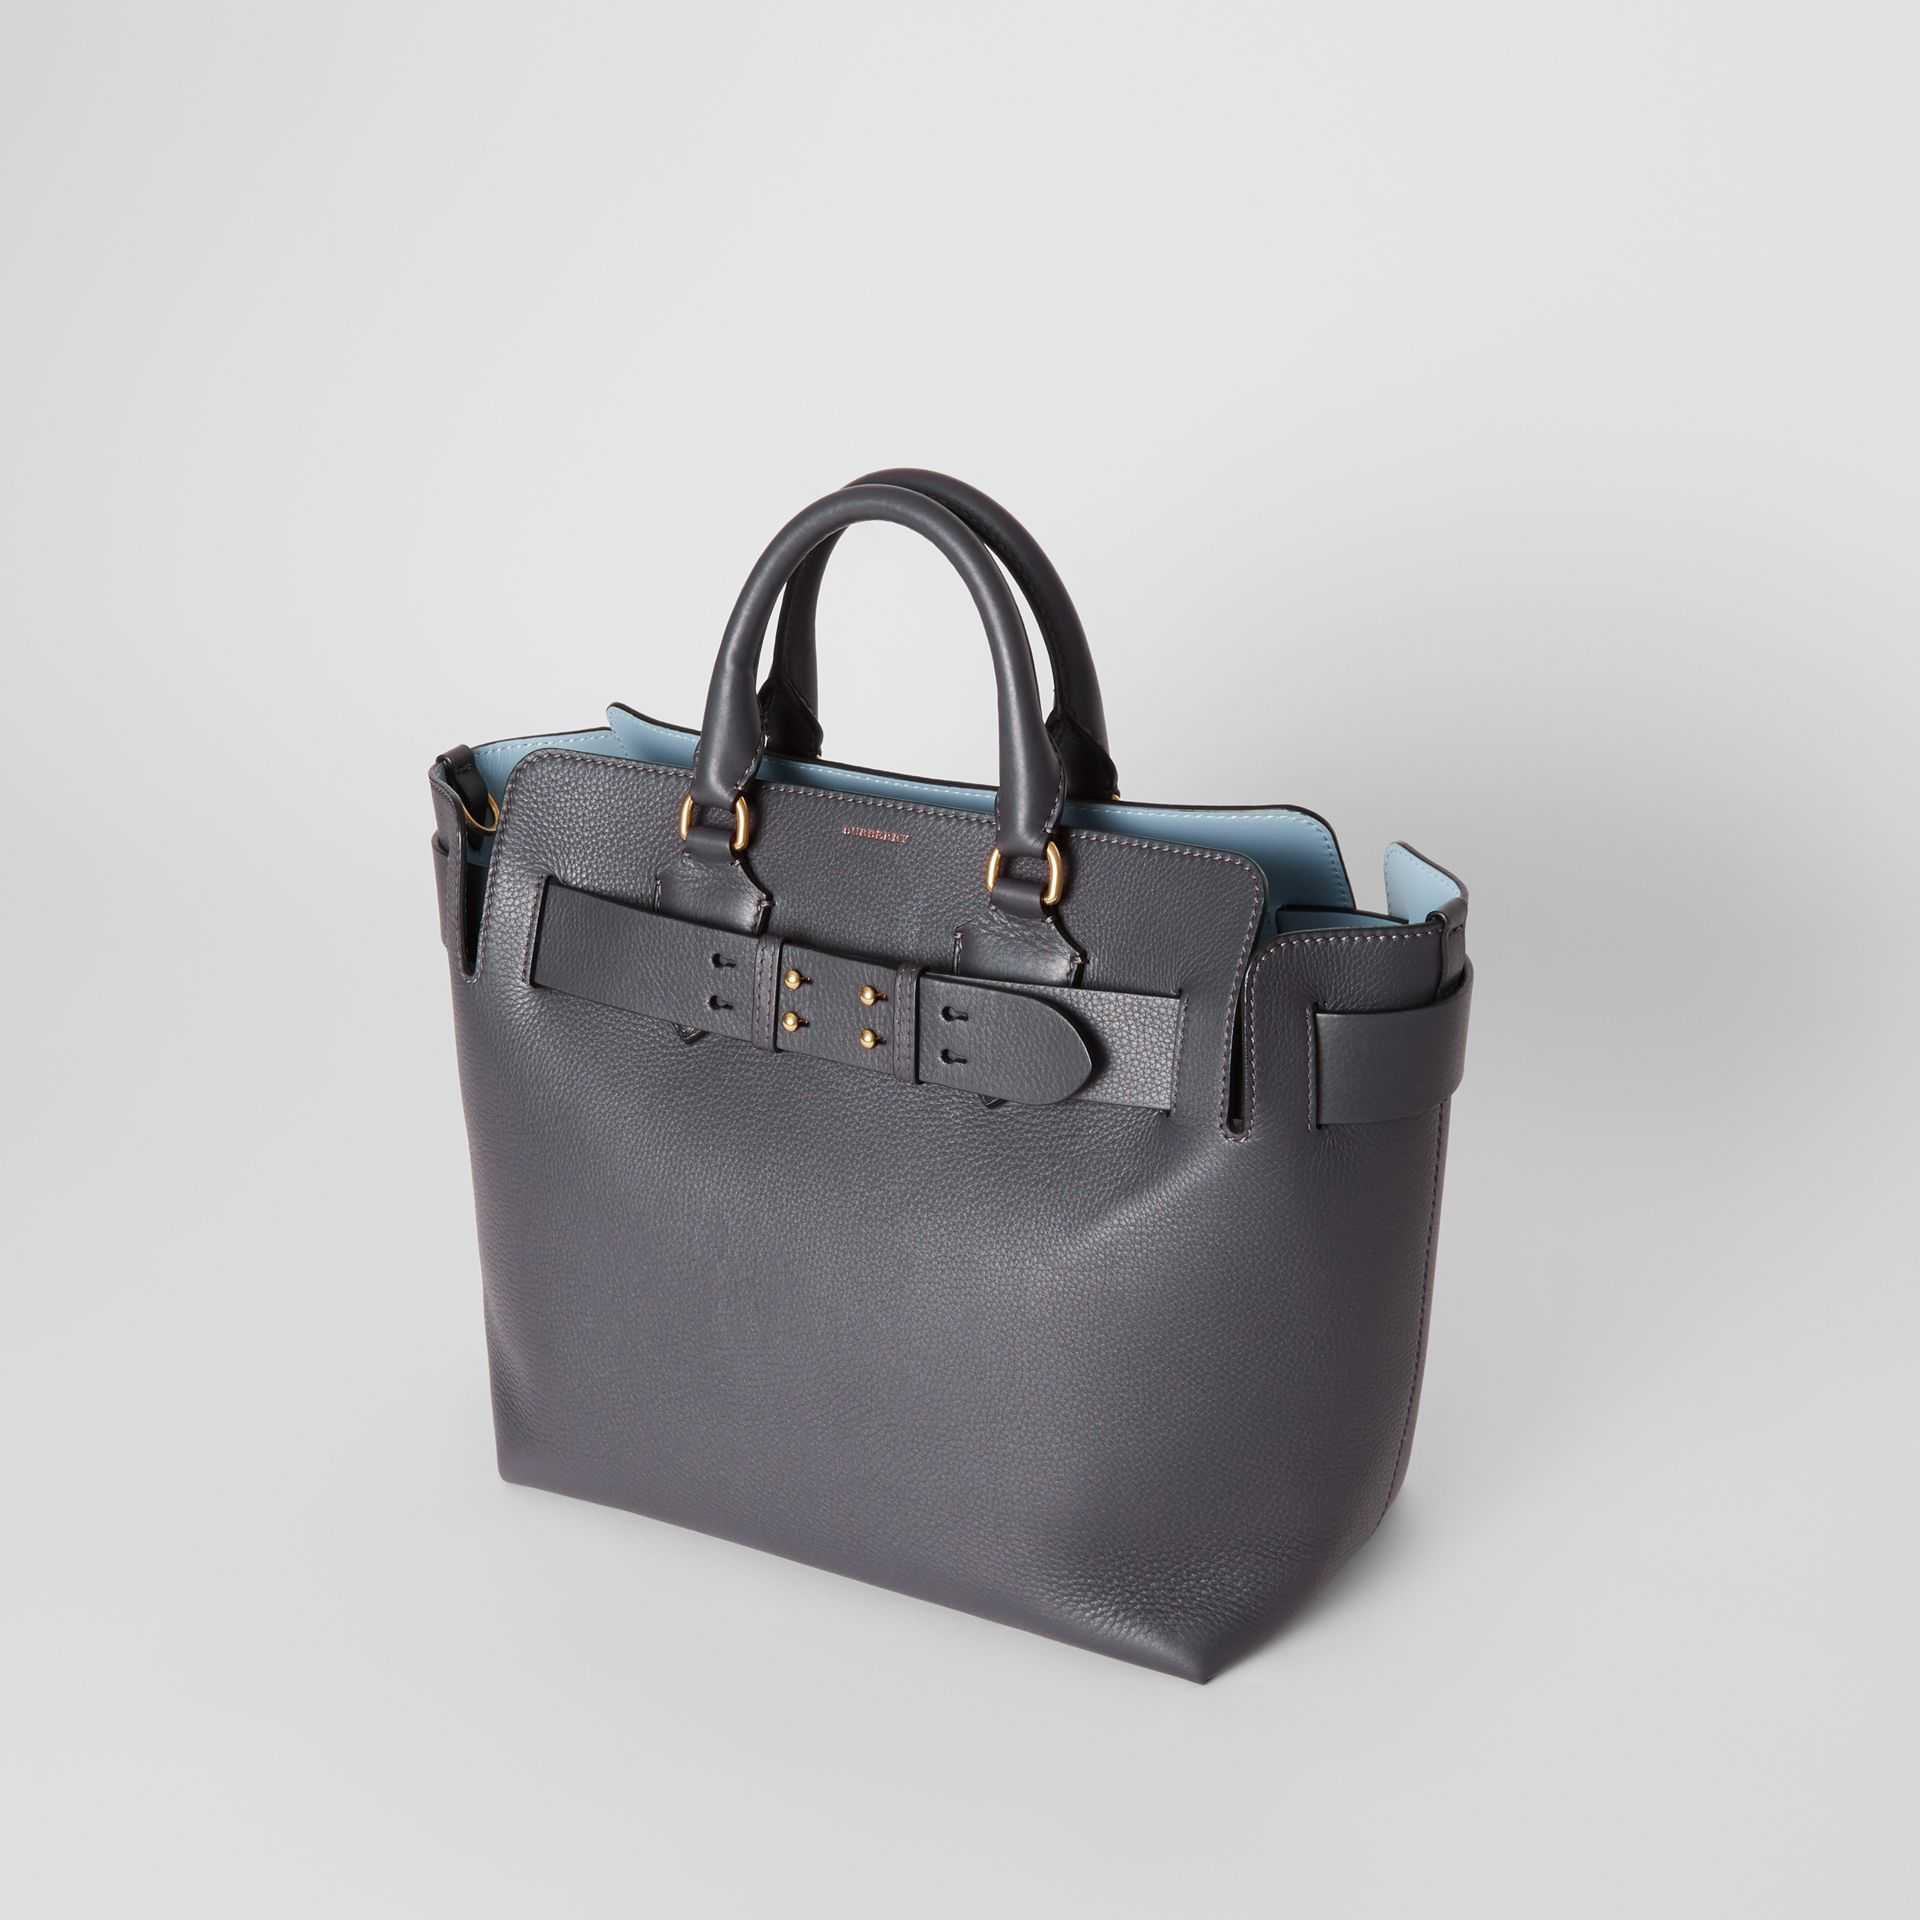 Sac The Belt moyen en cuir (Gris Anthracite) - Femme | Burberry - photo de la galerie 4